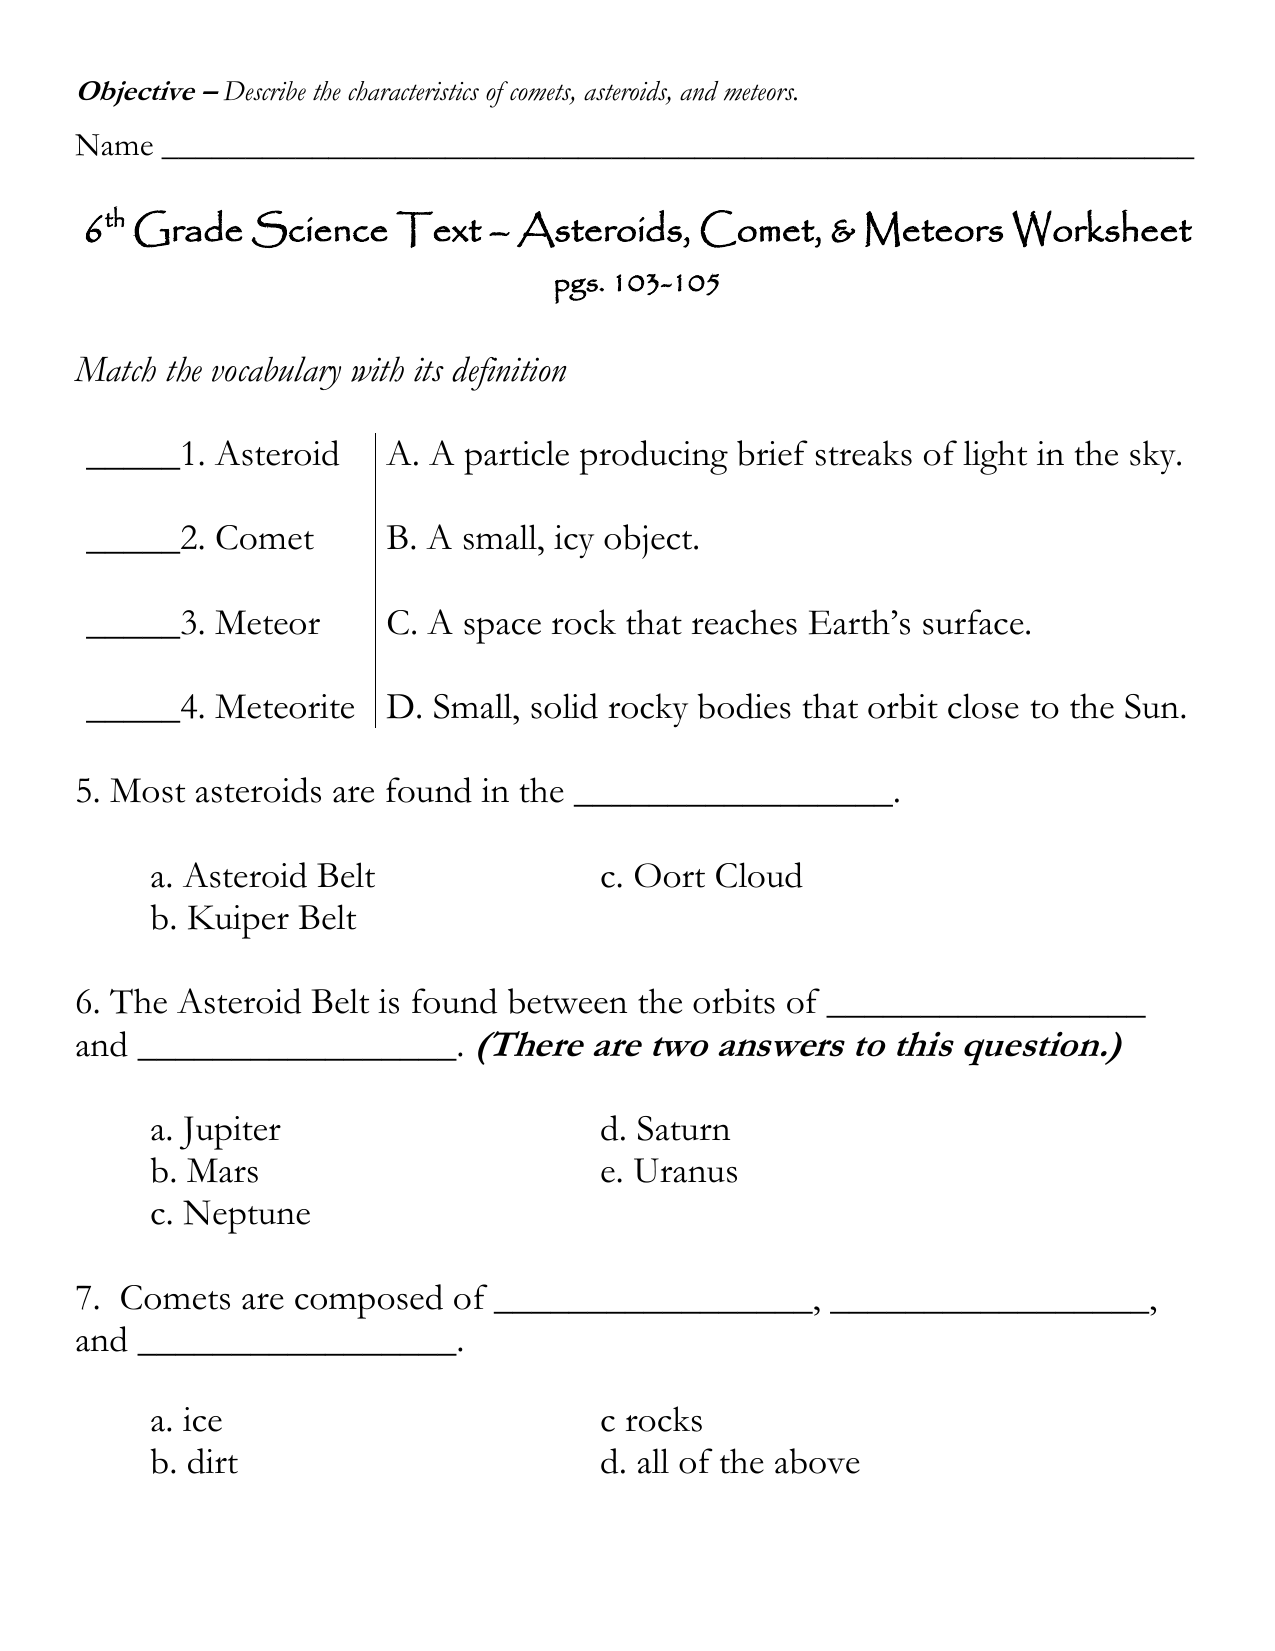 6 Grade Science Text Asteroids Comet Meteors Worksheet – Sixth Grade Science Worksheets